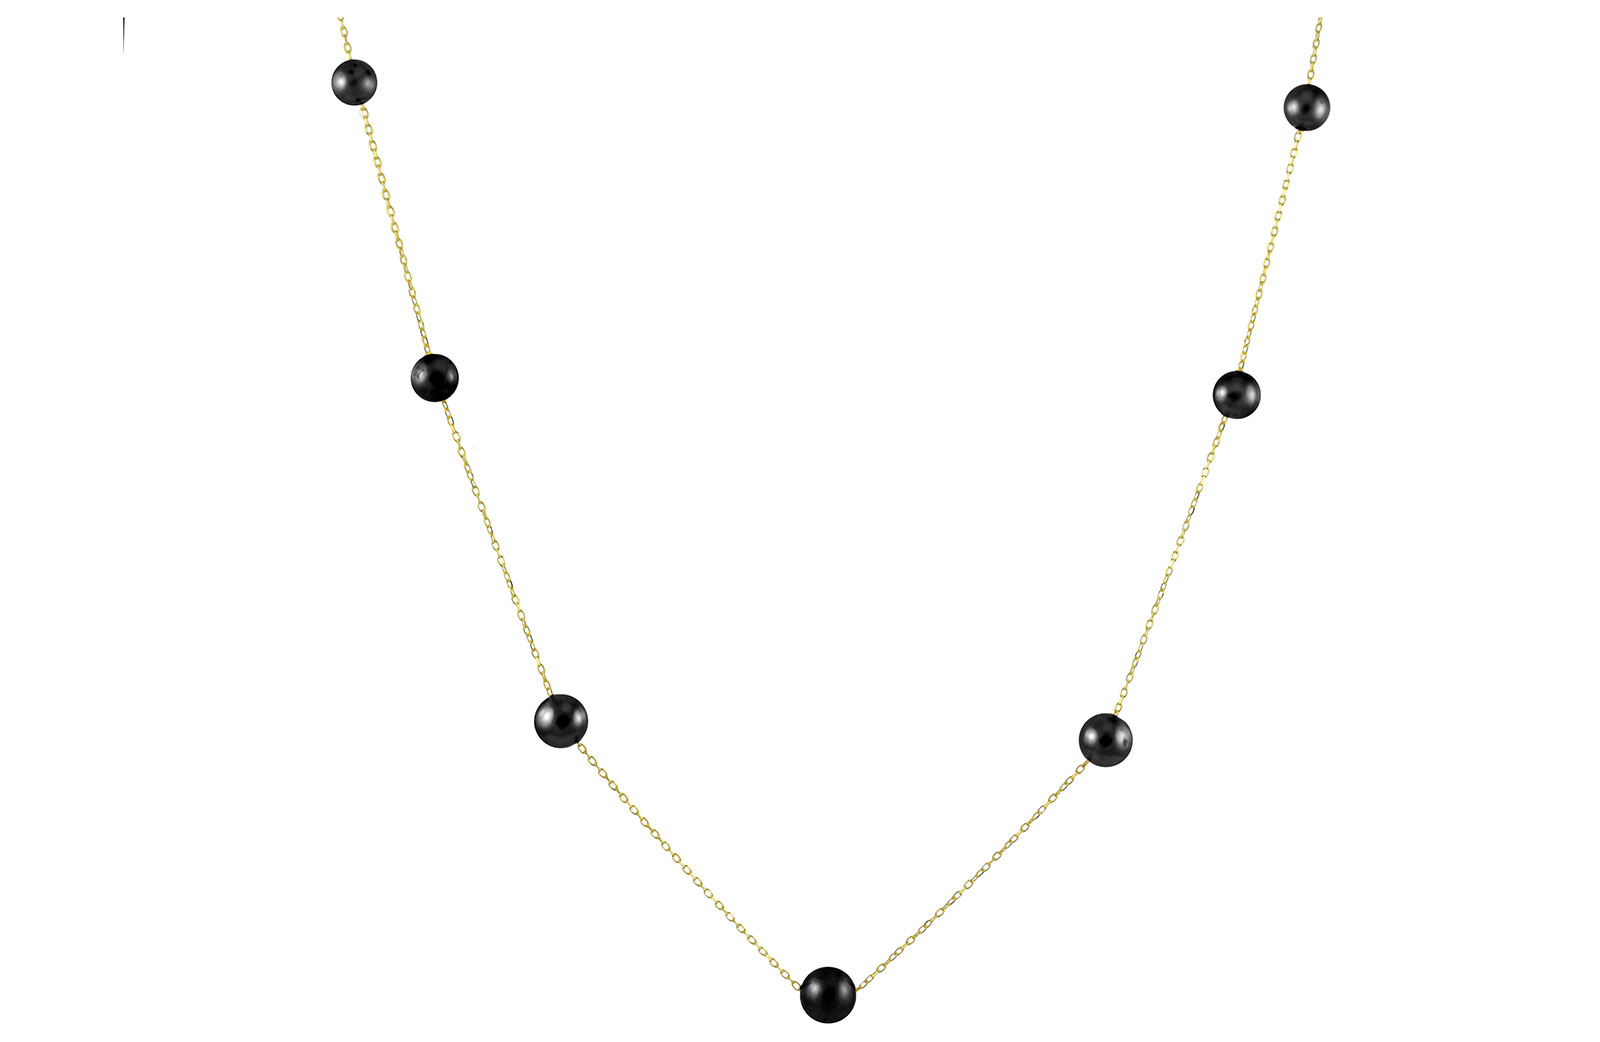 VP Jewels 18K Solid Gold 5-7MM Gradual  Built-in Black Pearl Necklace